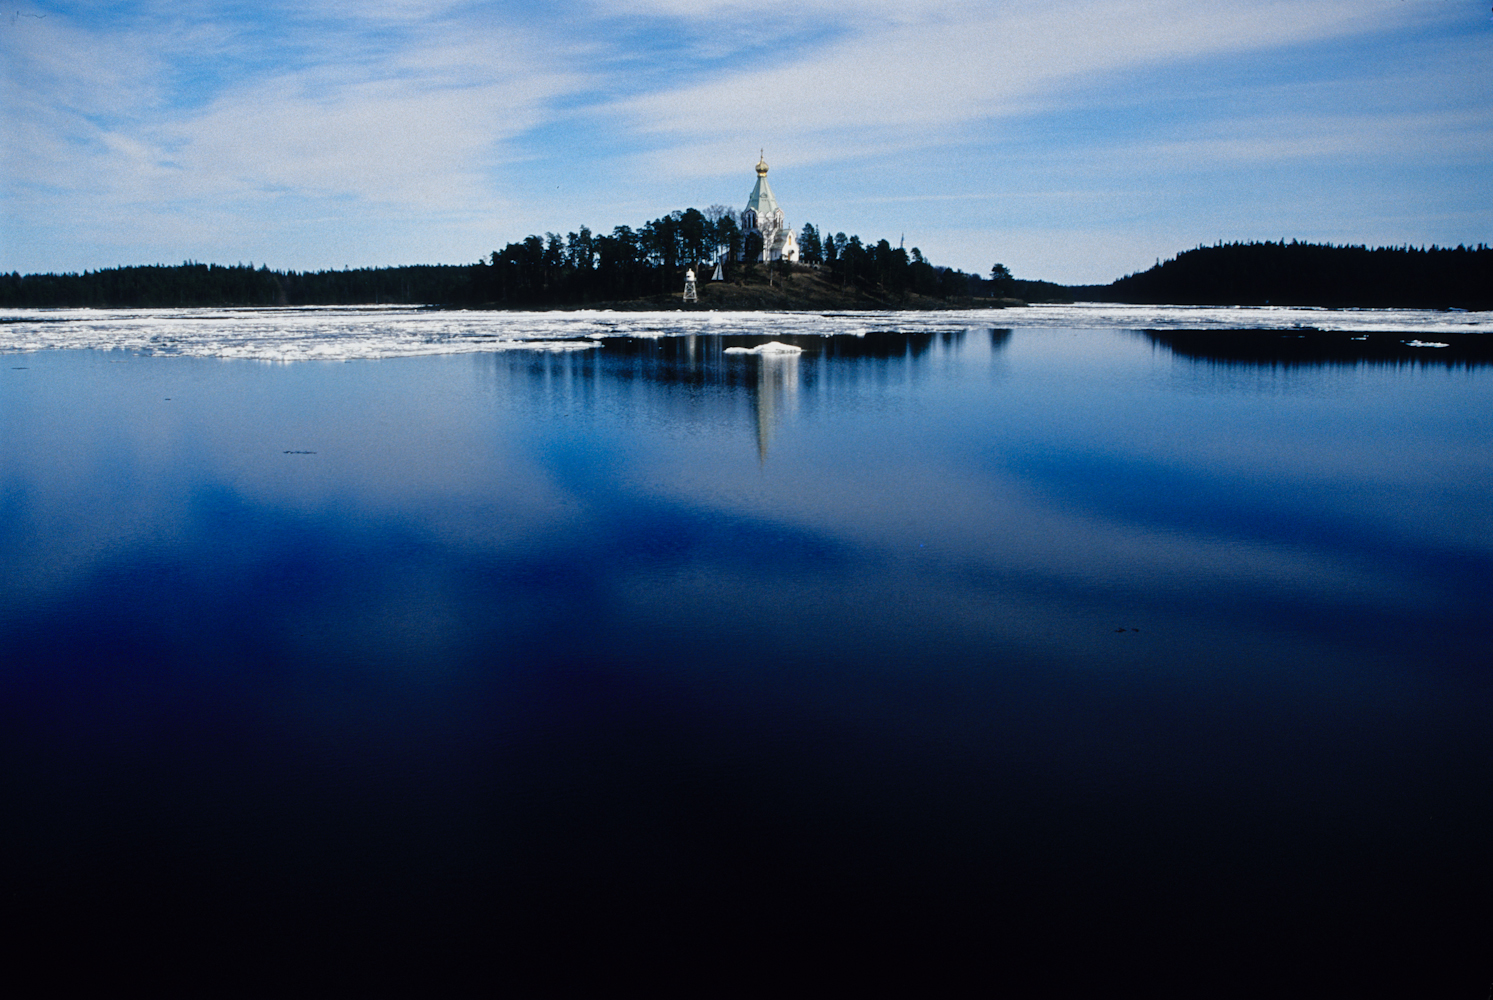 Nikolsky Island, part of the Valaam Monastery located on an island on Lake Ladoga in Northern Russia.